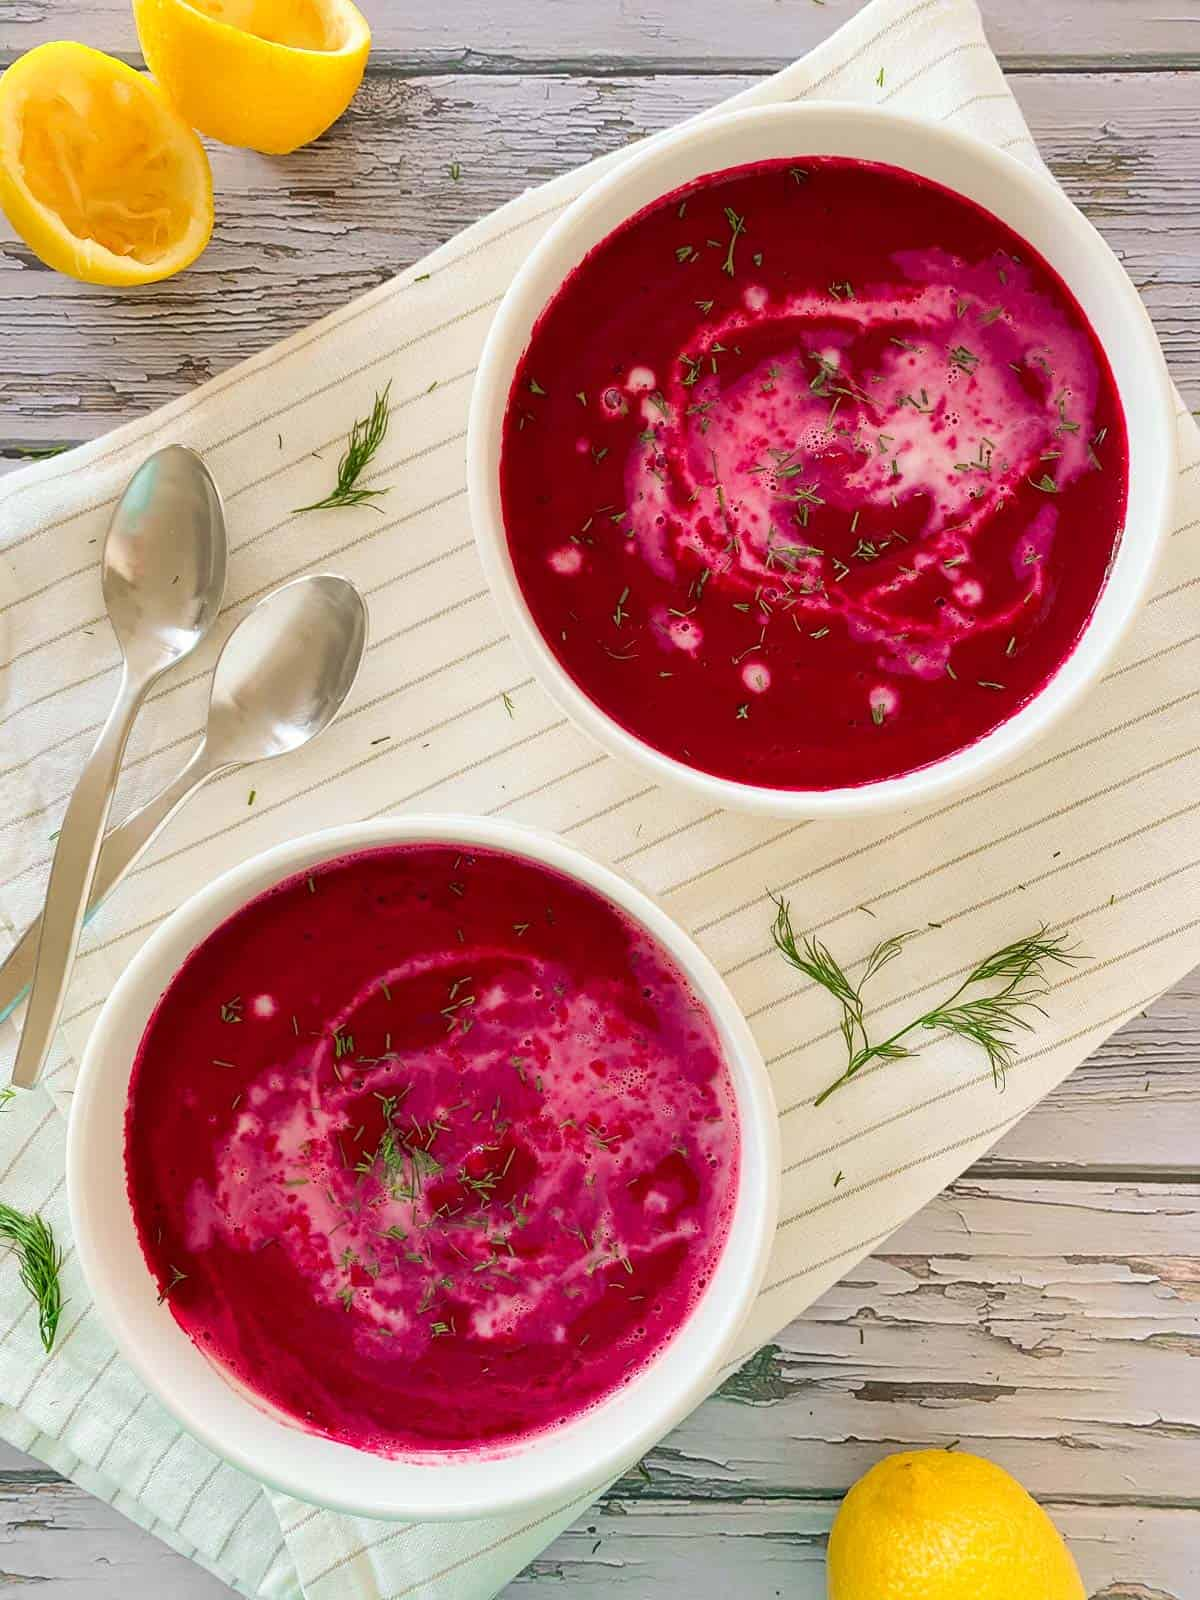 Two bowls filled with beet soup and garnished with cream and dill.